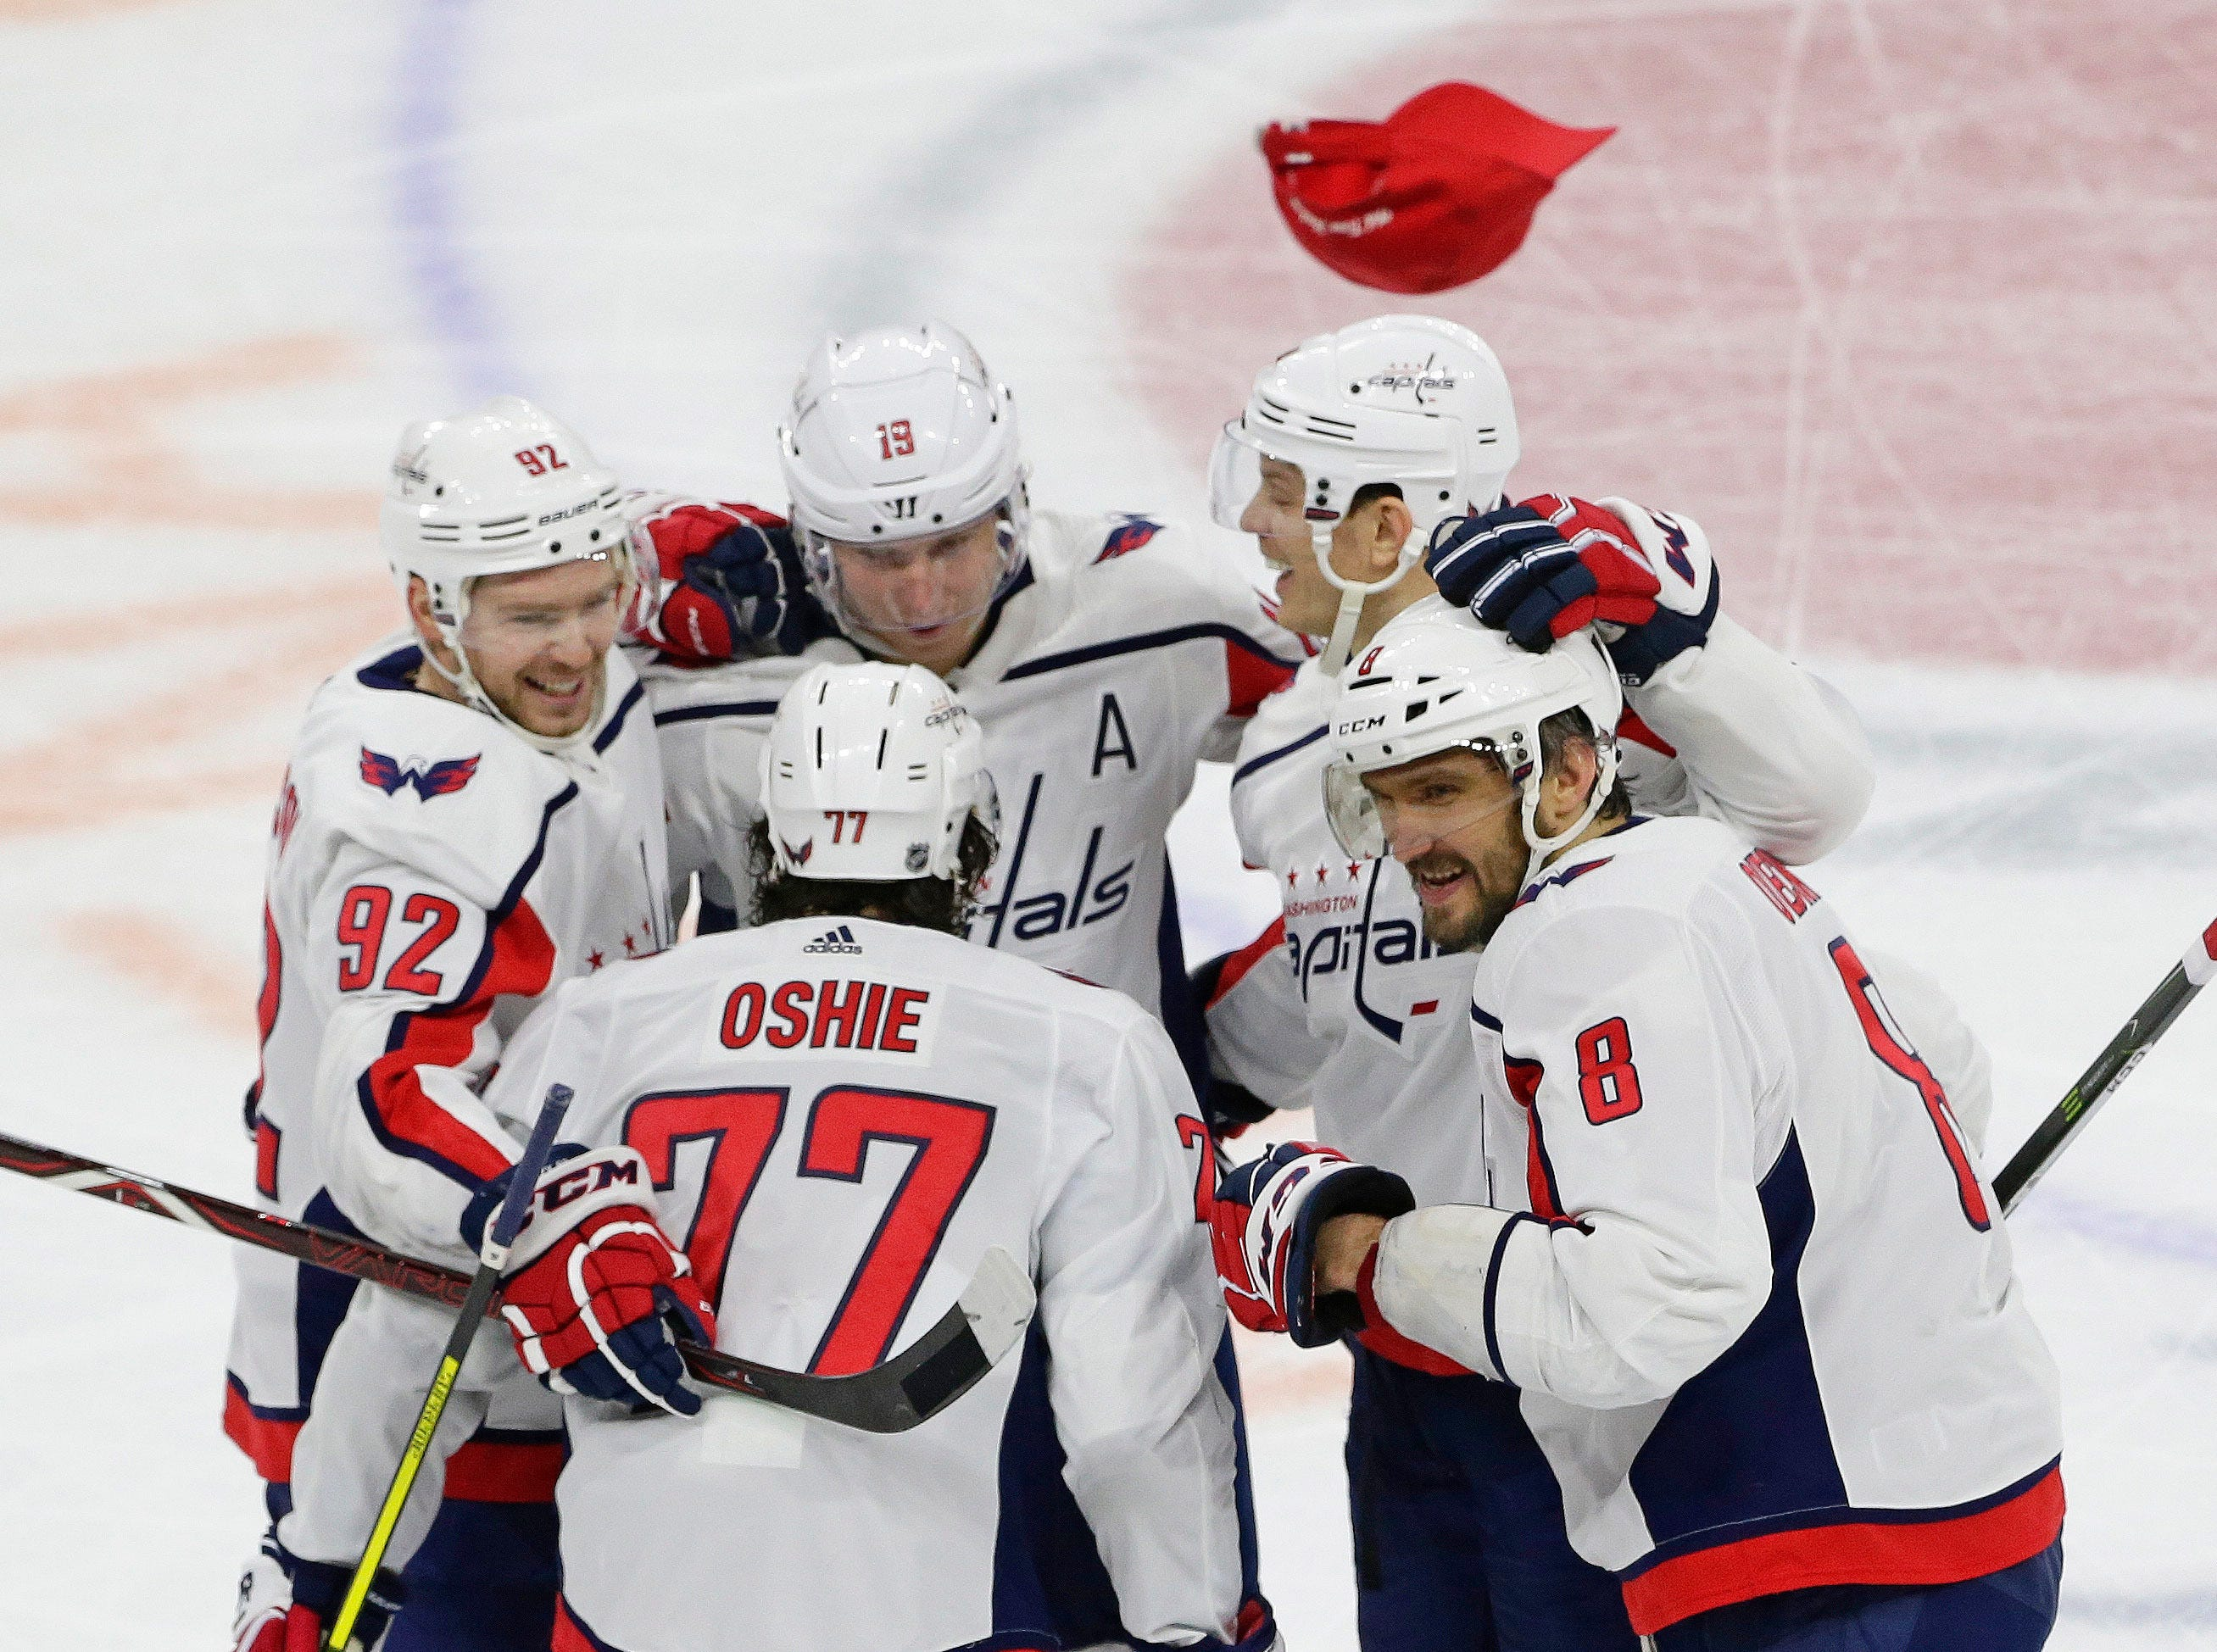 Dec. 14: Washington Capitals star Alex Ovechkin (8) is congratulated by teammates after scoring his second consecutive hat trick, this time in a 6-5 win against the Carolina Hurricanes.